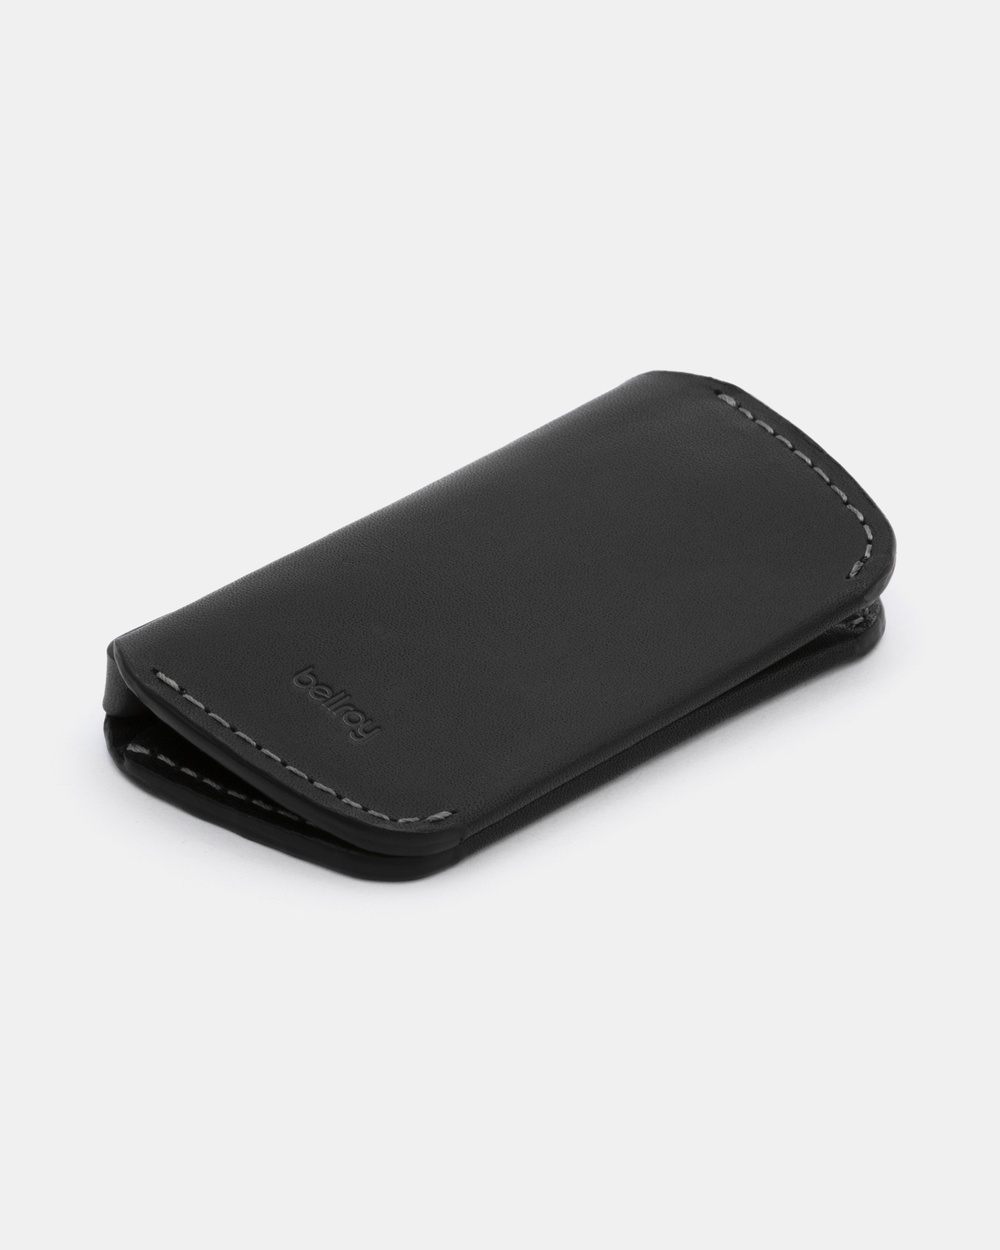 Bellroy Key Cover Second Edition Rings Black